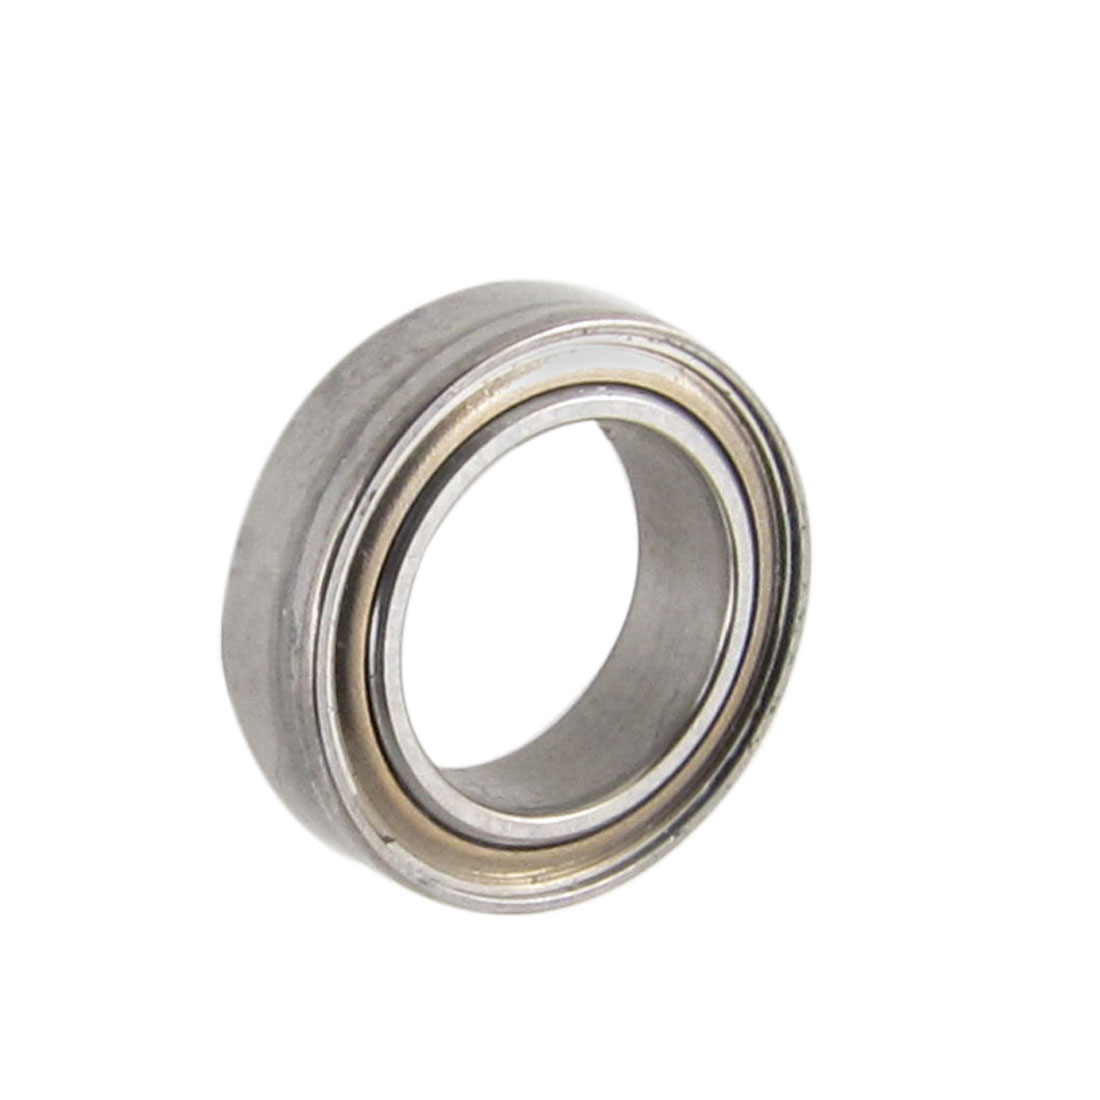 11mm x 7mm x 3mm Shielded Deep Groove Radial Ball Bearing Silver Tone